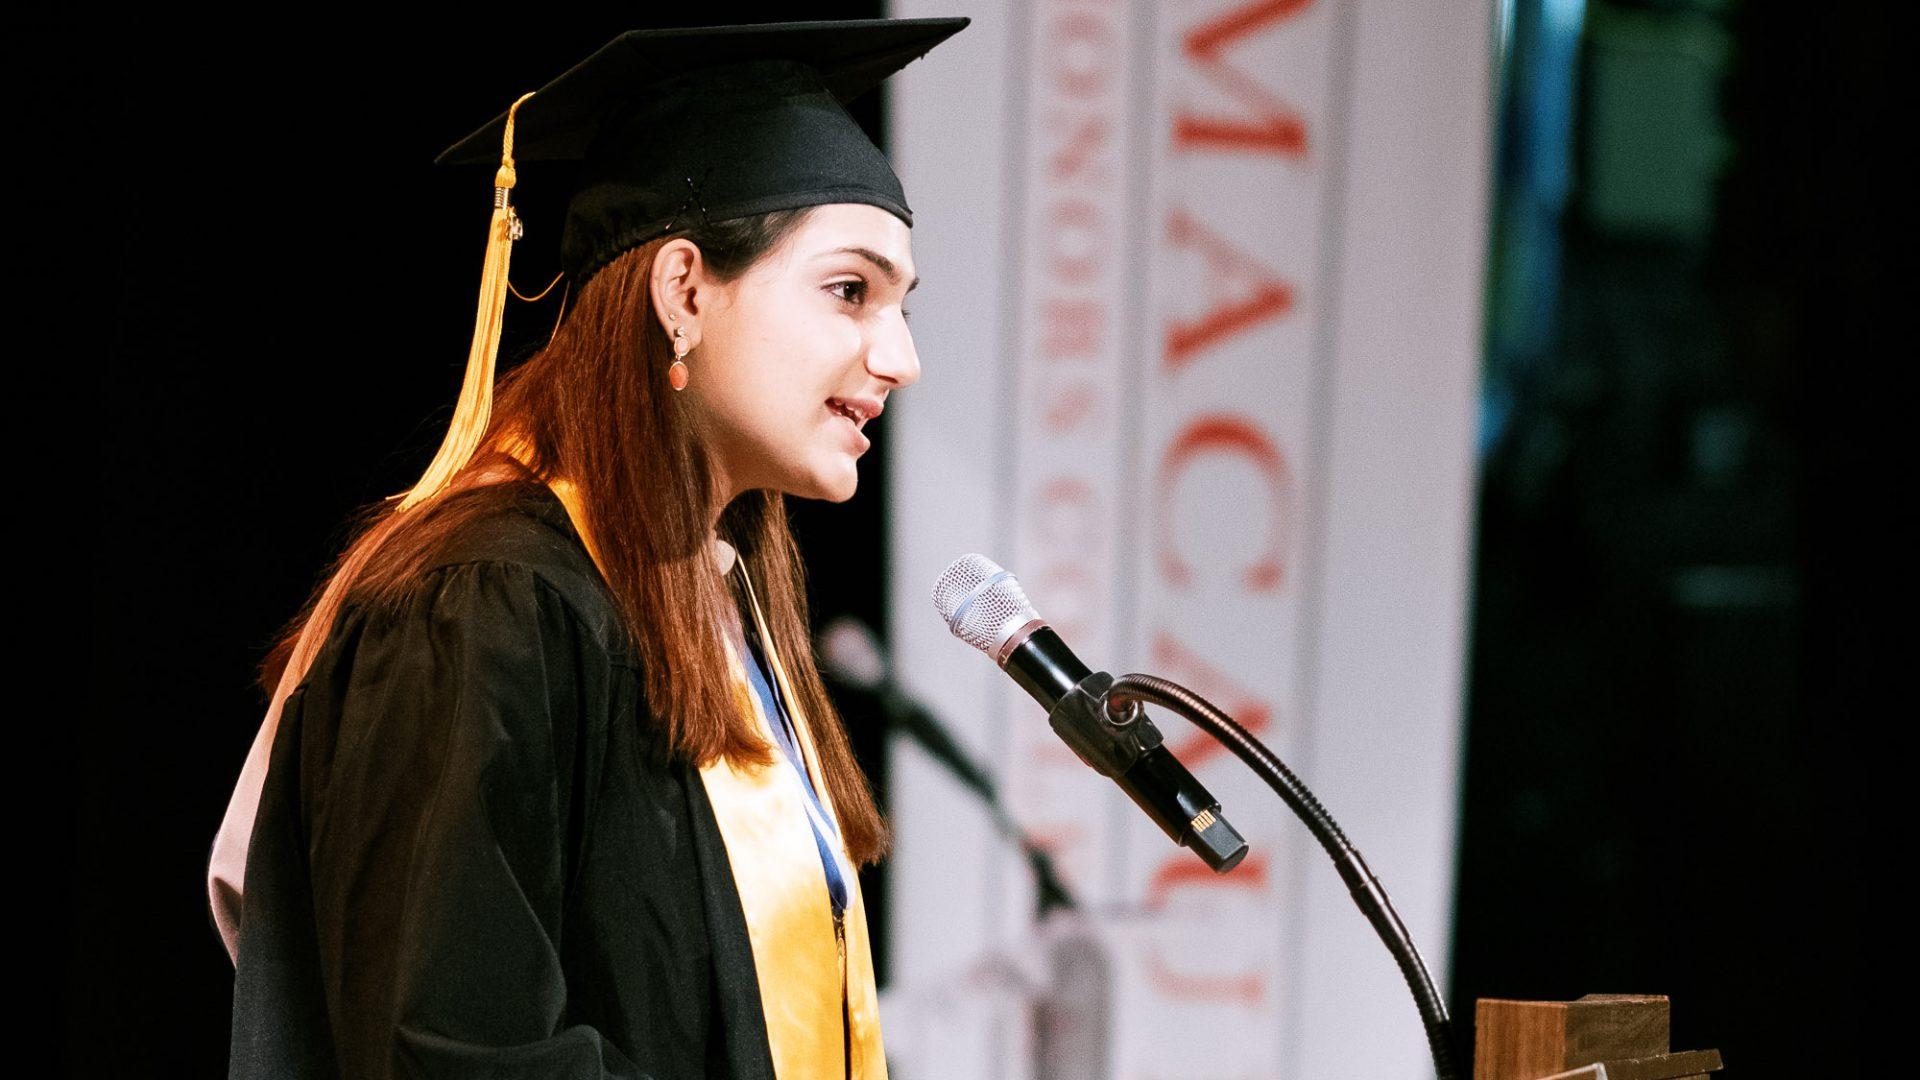 Vasiliki Savvides | Commencement Remarks from the Class of 2019